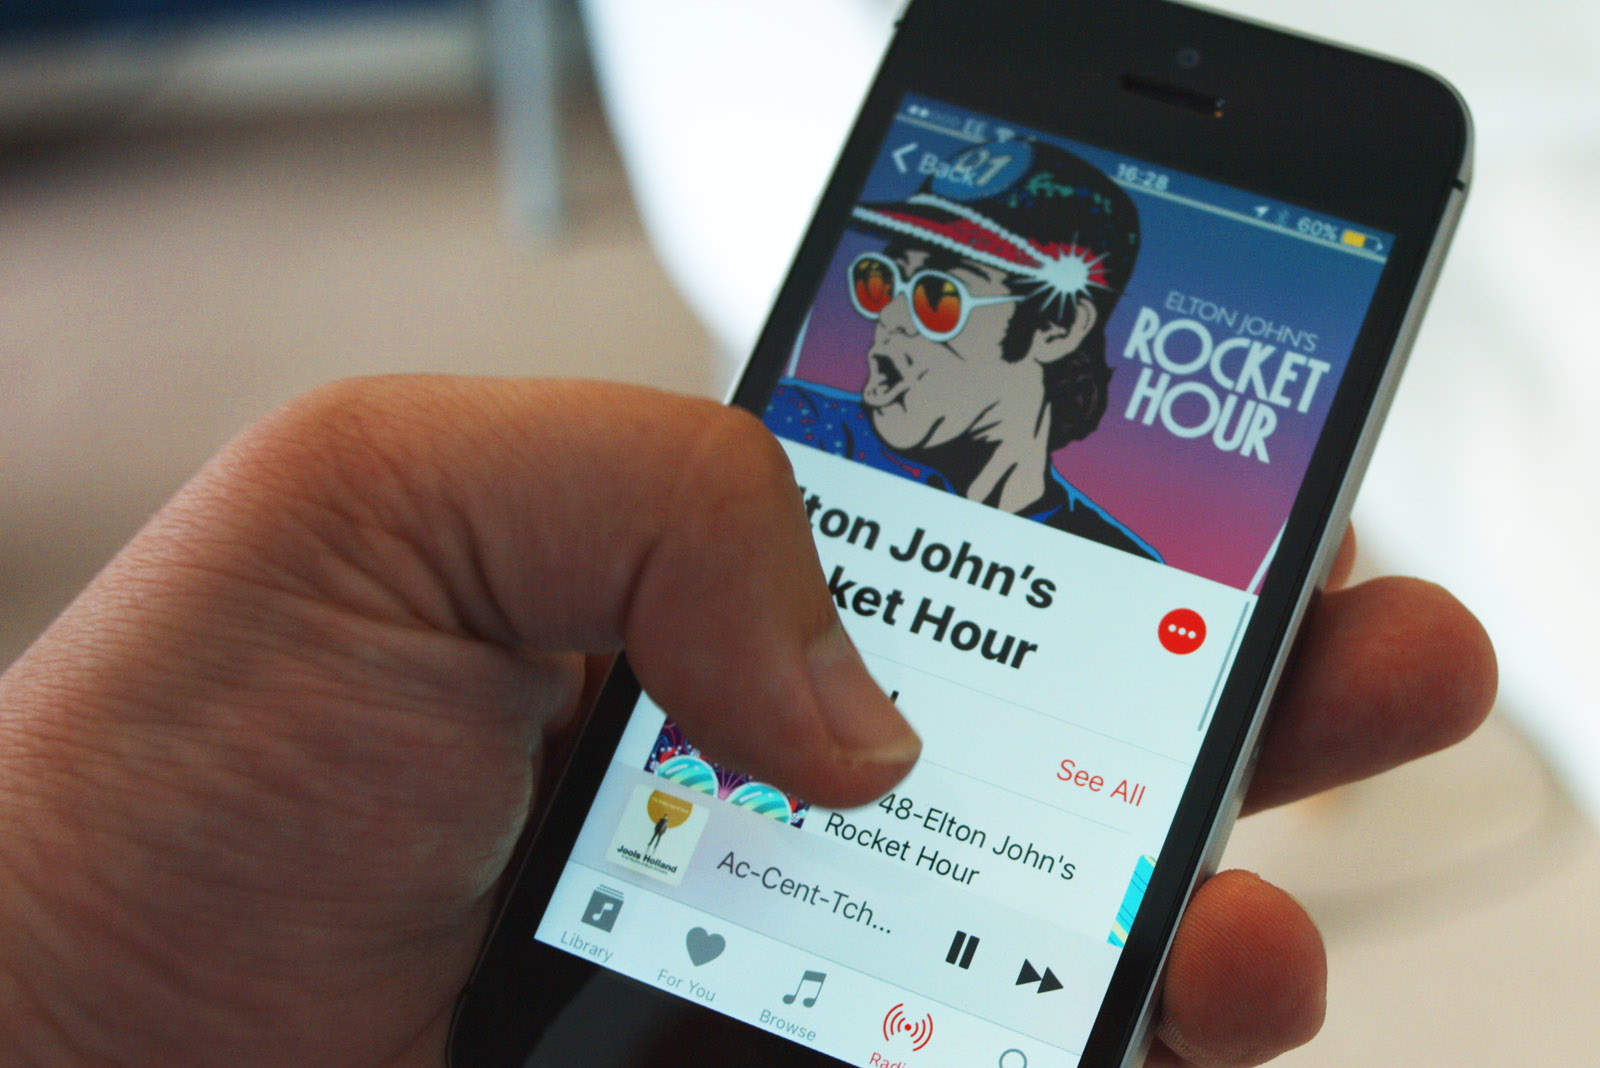 Apple Music could soon support Chromecast streaming